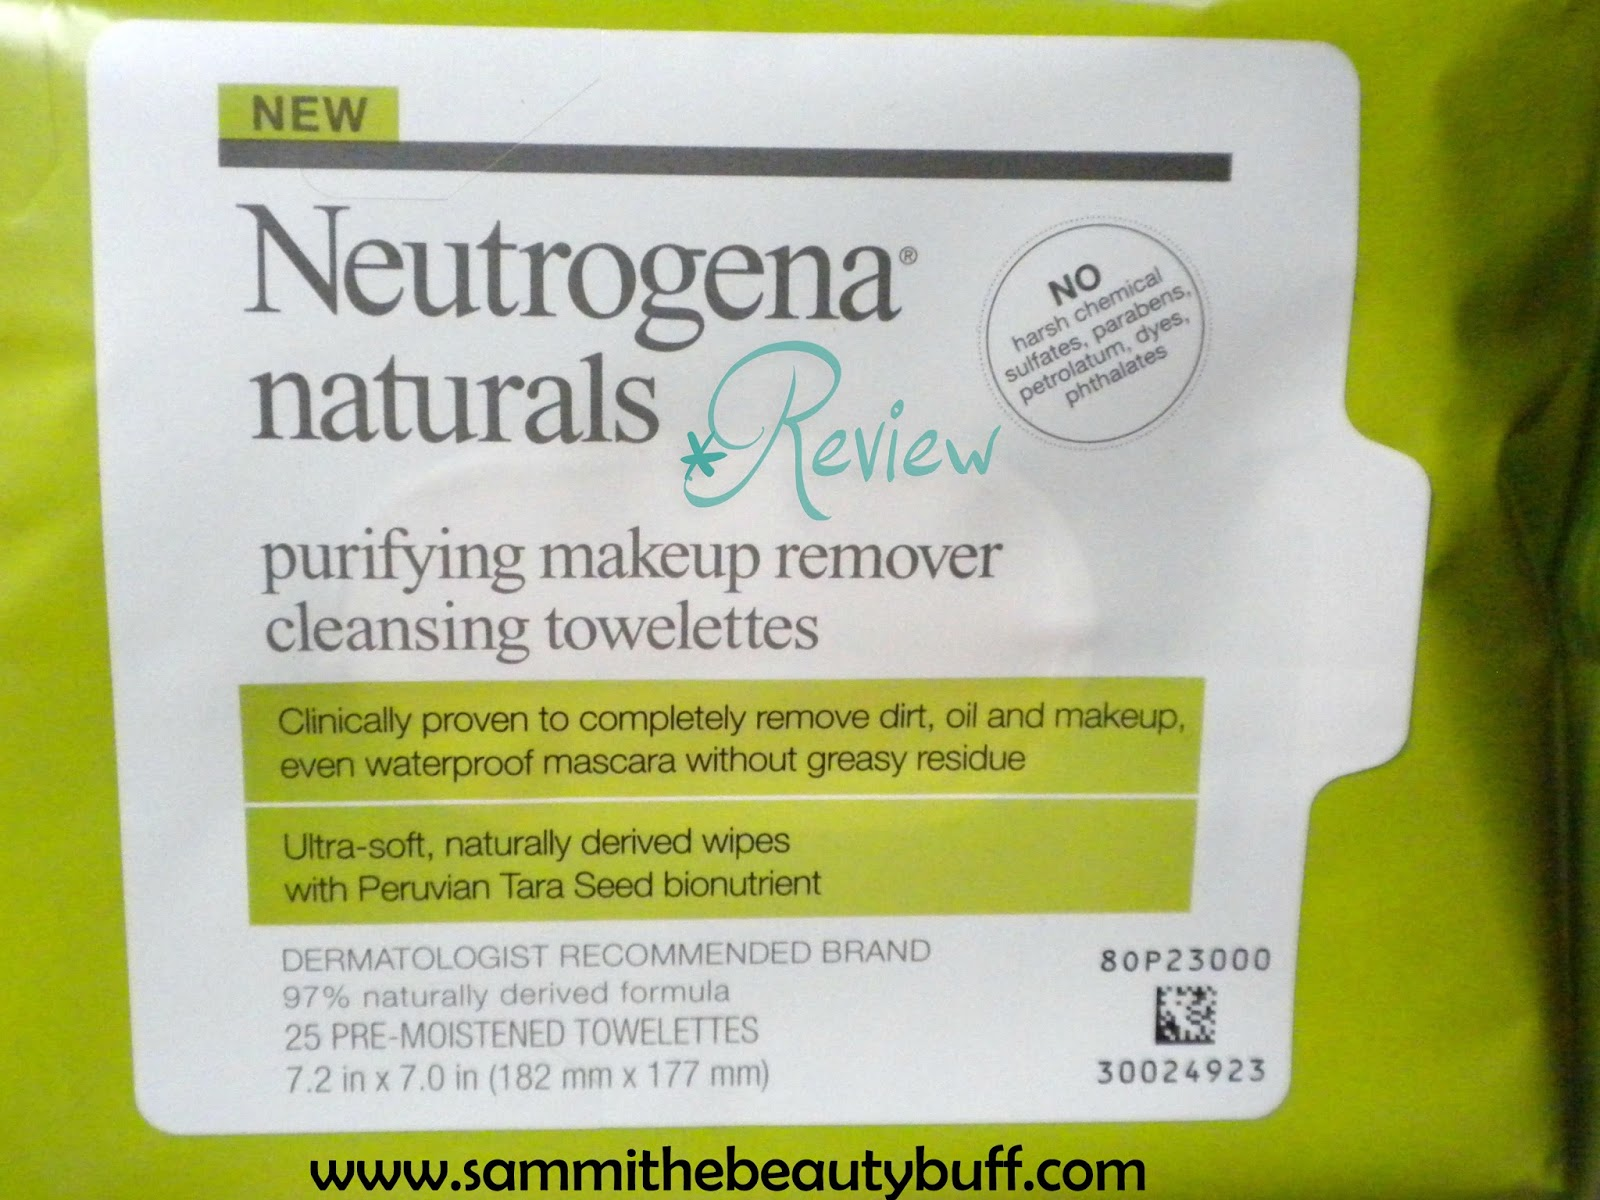 ... Review: Neutrogena Naturals Purifying Makeup Remover Cleansing Wipes